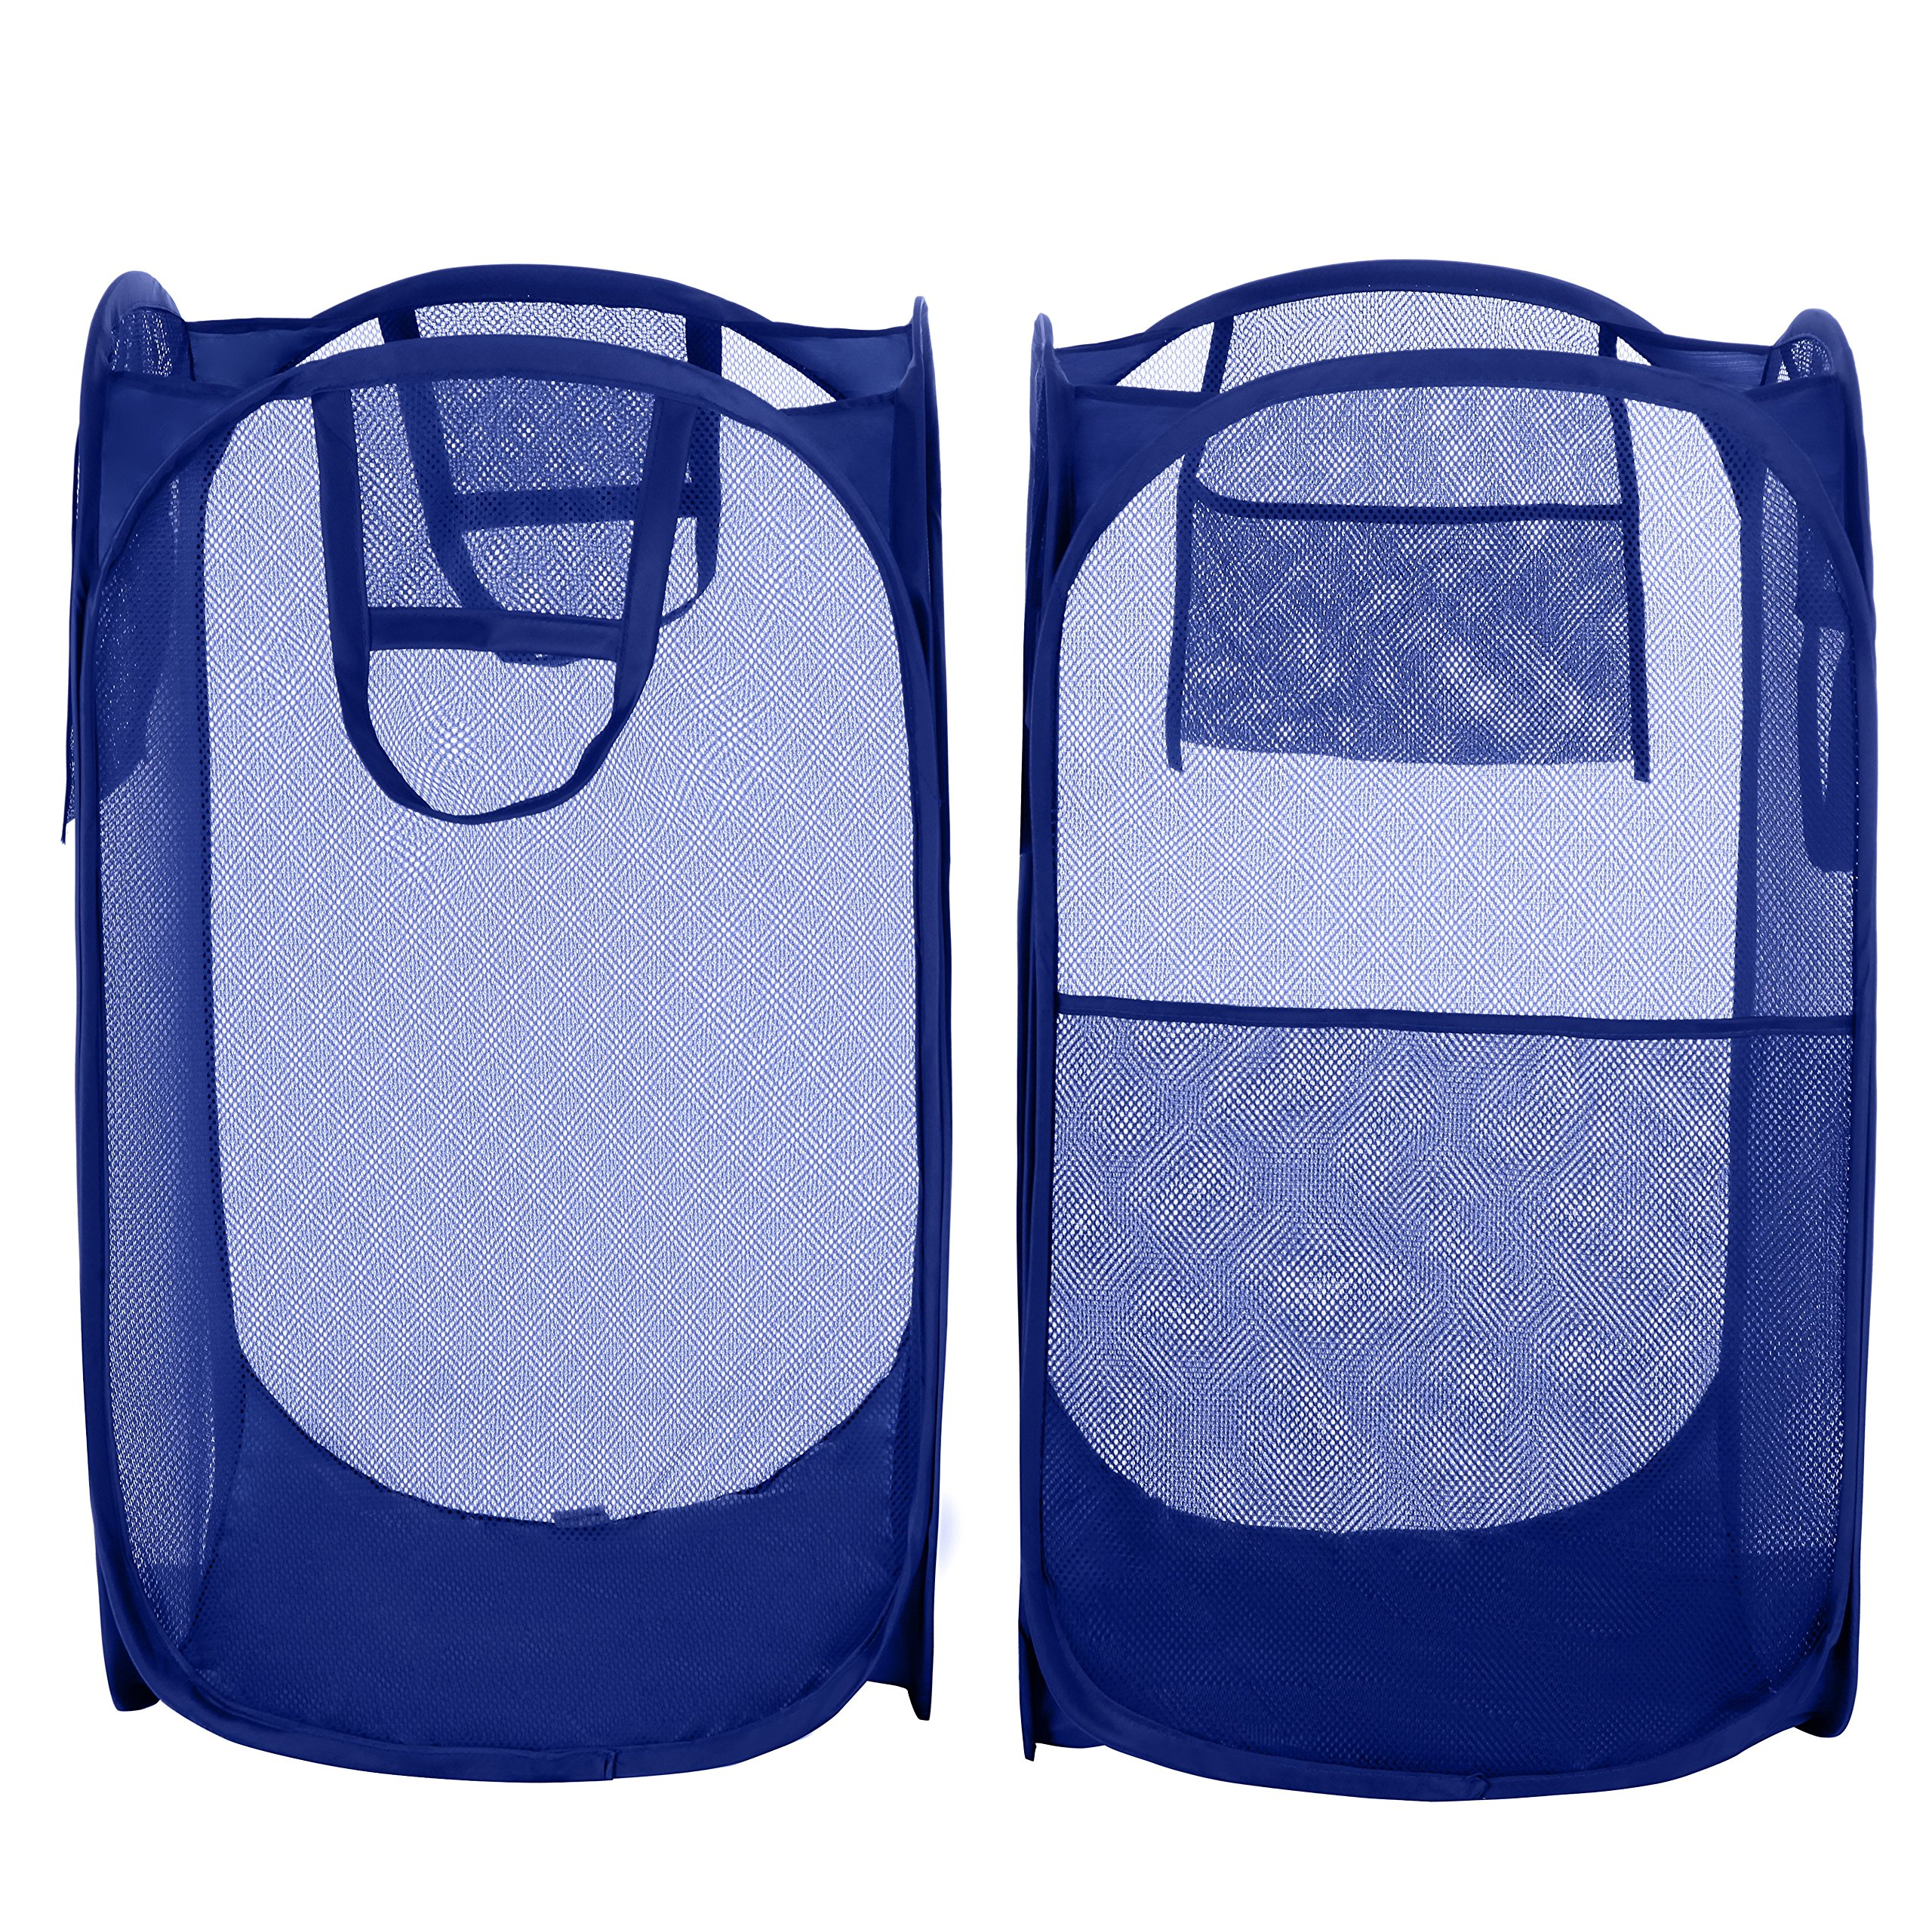 Bagail 2-Pack Pop-up Mesh Laundry Hamper with Reinforced Carry Handles,Foldable Collapsible Laundry Basket with Side Pocket by BAGAIL (Image #1)